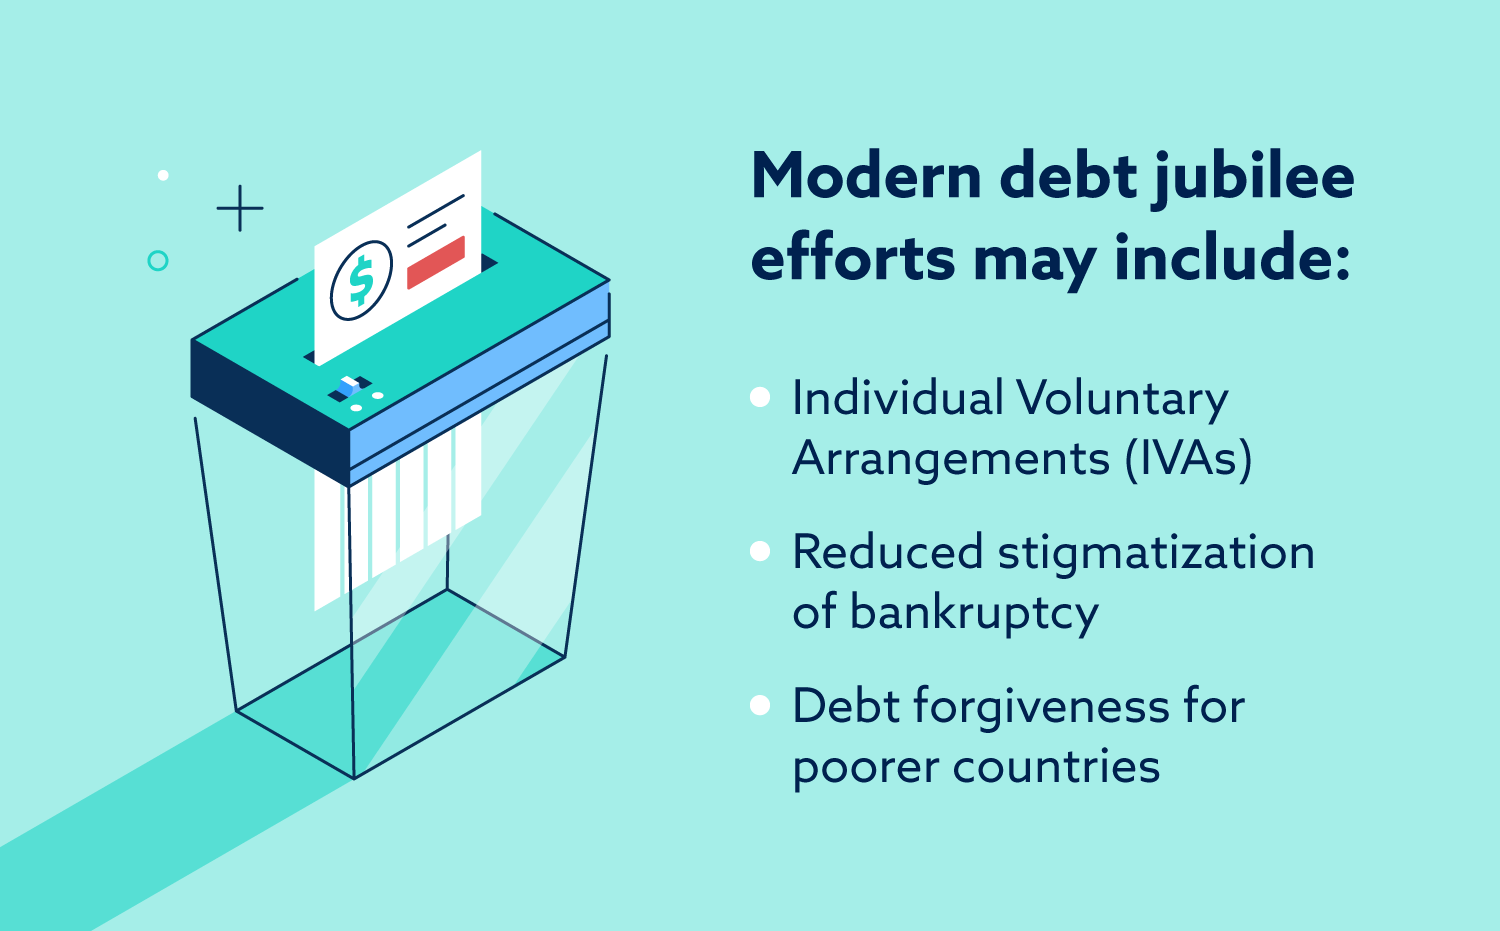 Modern debt jubilee efforts may include: individual voluntary arrangements (IVAs), reduced stigmatization of bankruptcy and debt forgiveness for poorer countries.